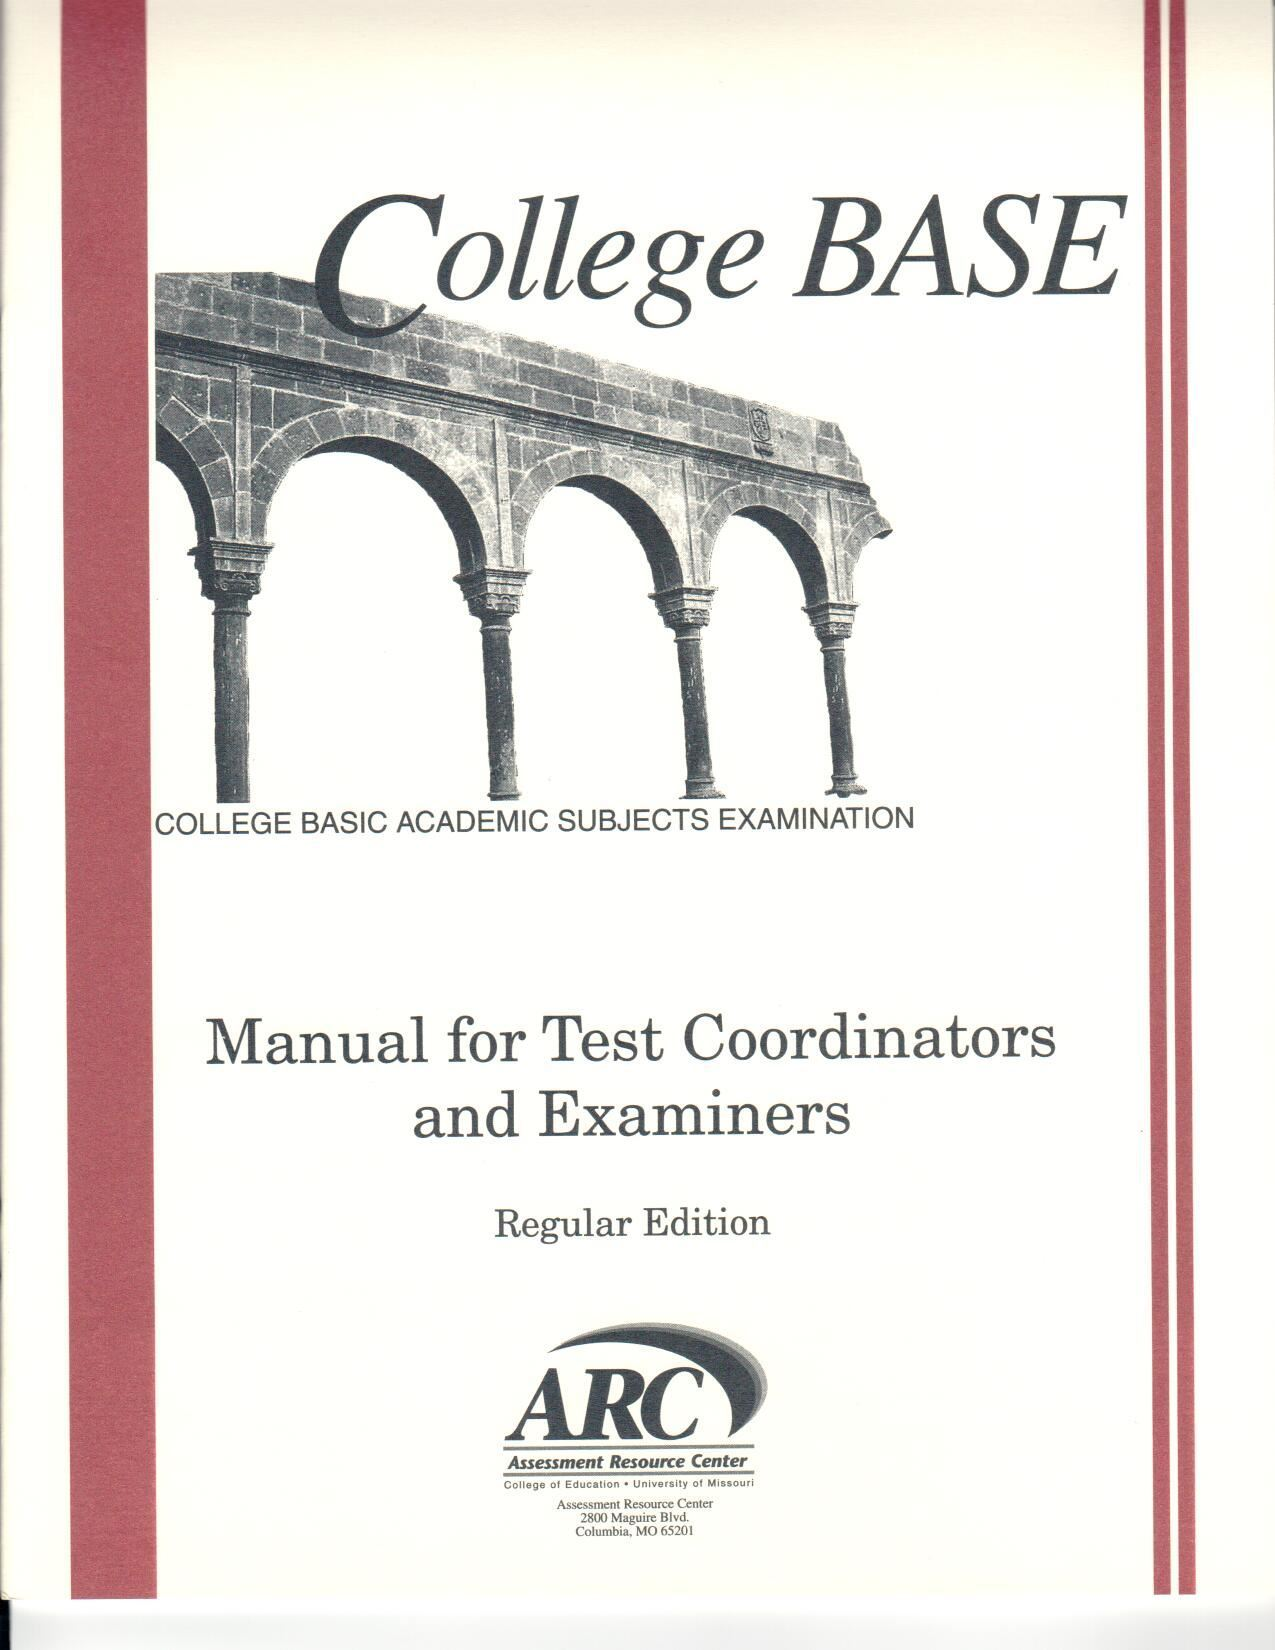 CBASE Manual for Test Coordinators & Examiners